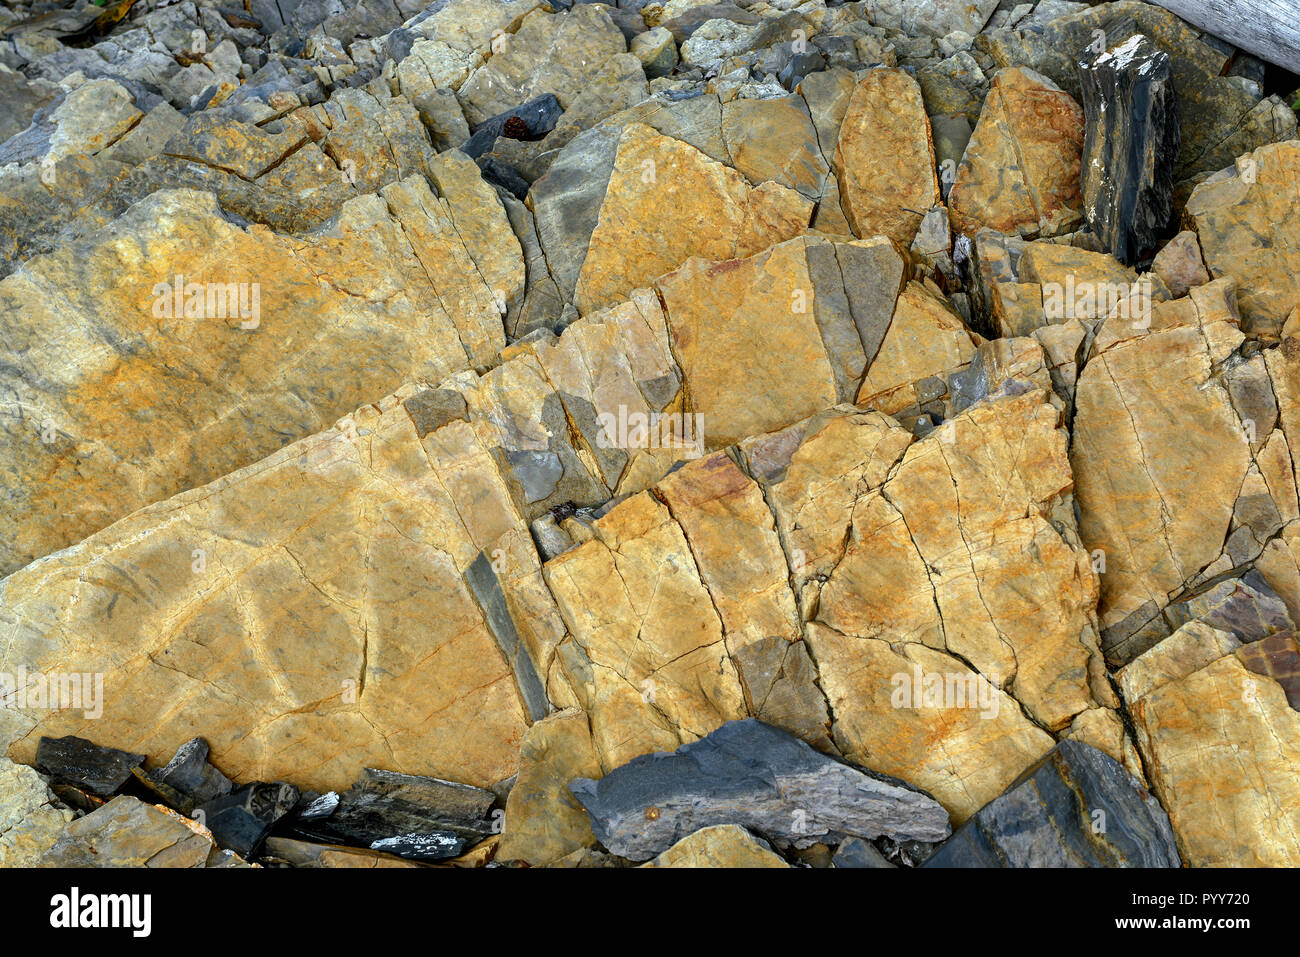 Jagged rock detail with geometric patterns - Stock Image